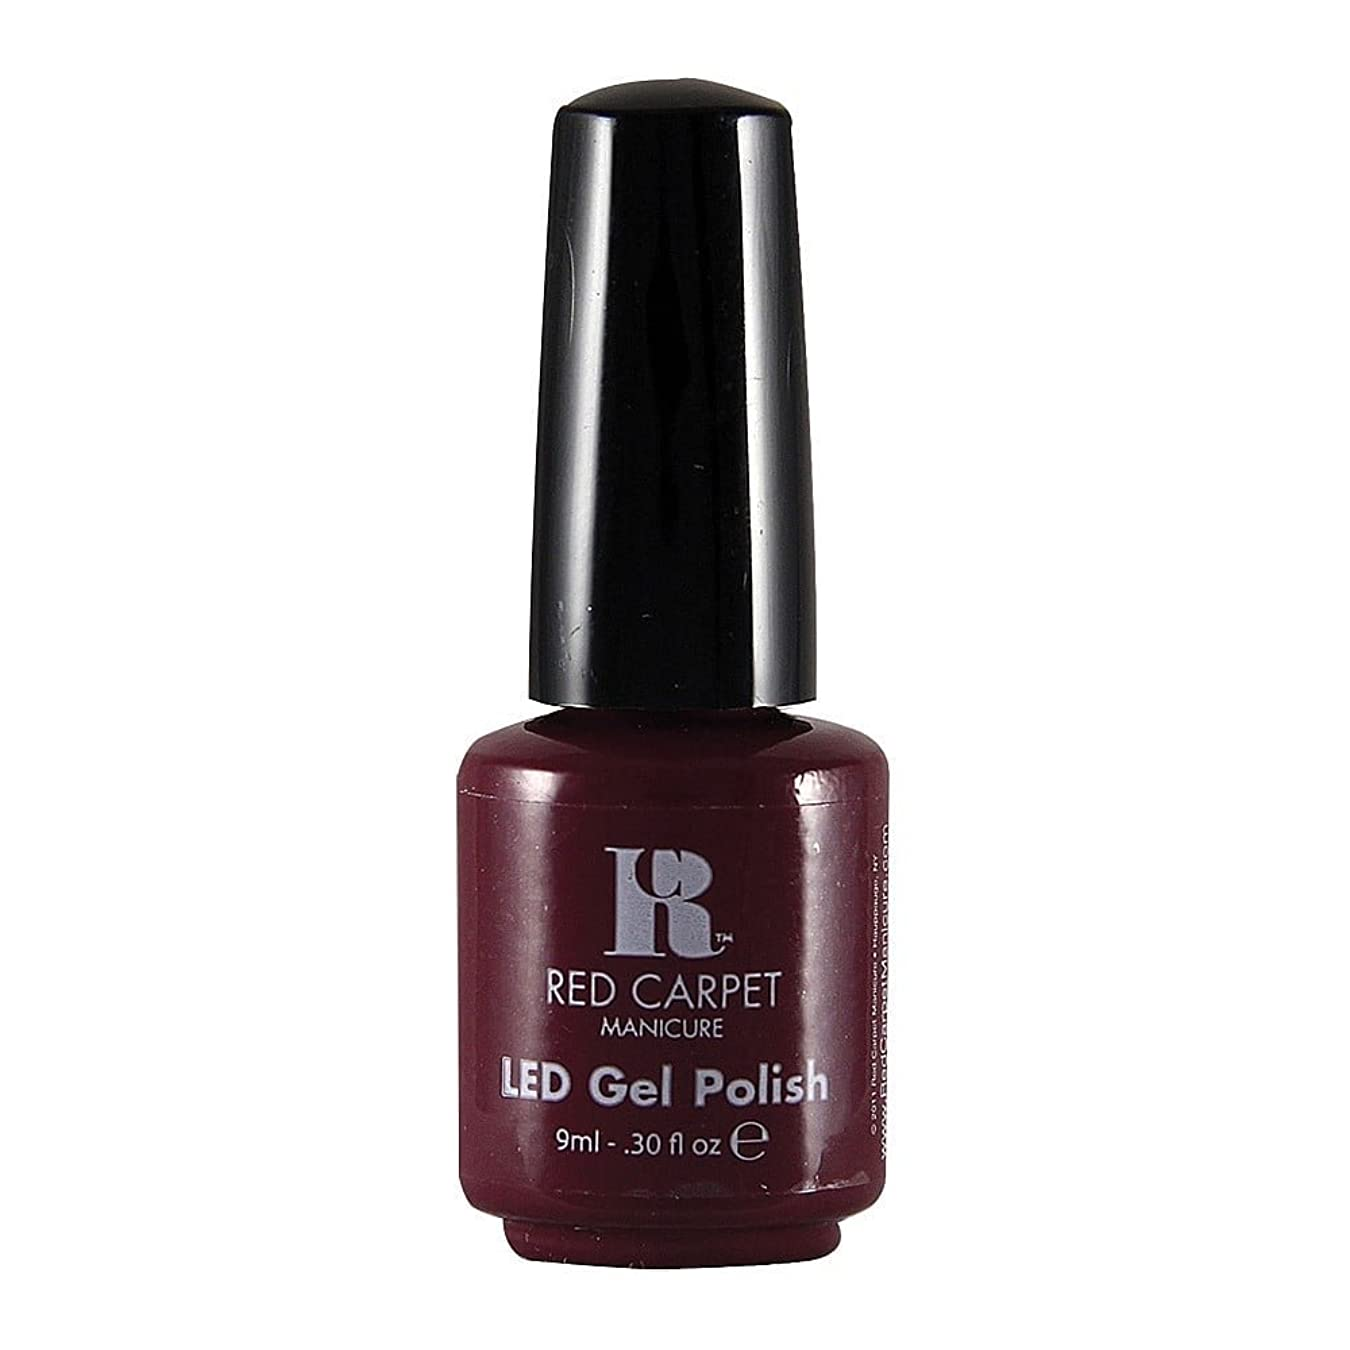 メダリストフィヨルド含むRed Carpet Manicure - LED Nail Gel Polish - Plum Up the Volume - 0.3oz / 9ml